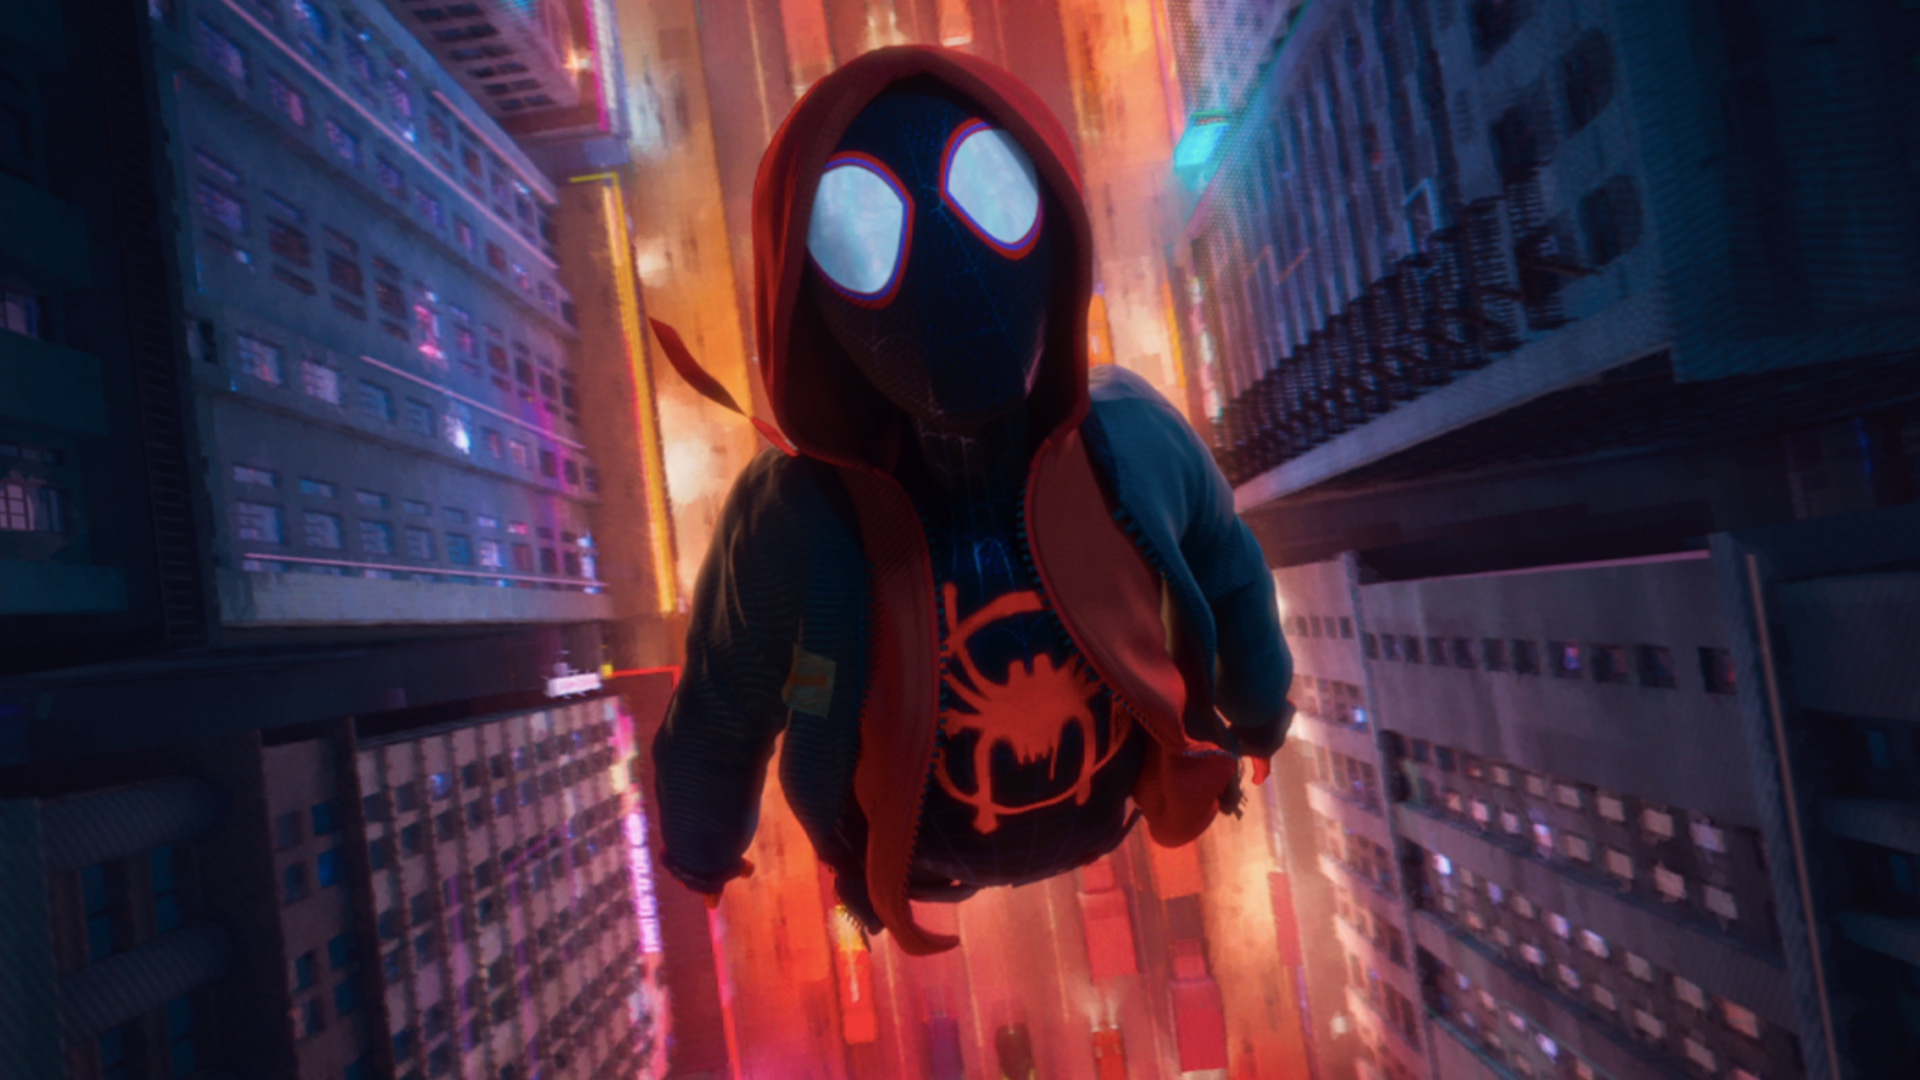 The Spider Man Into The Spider Verse Team Are Hard At Work On The